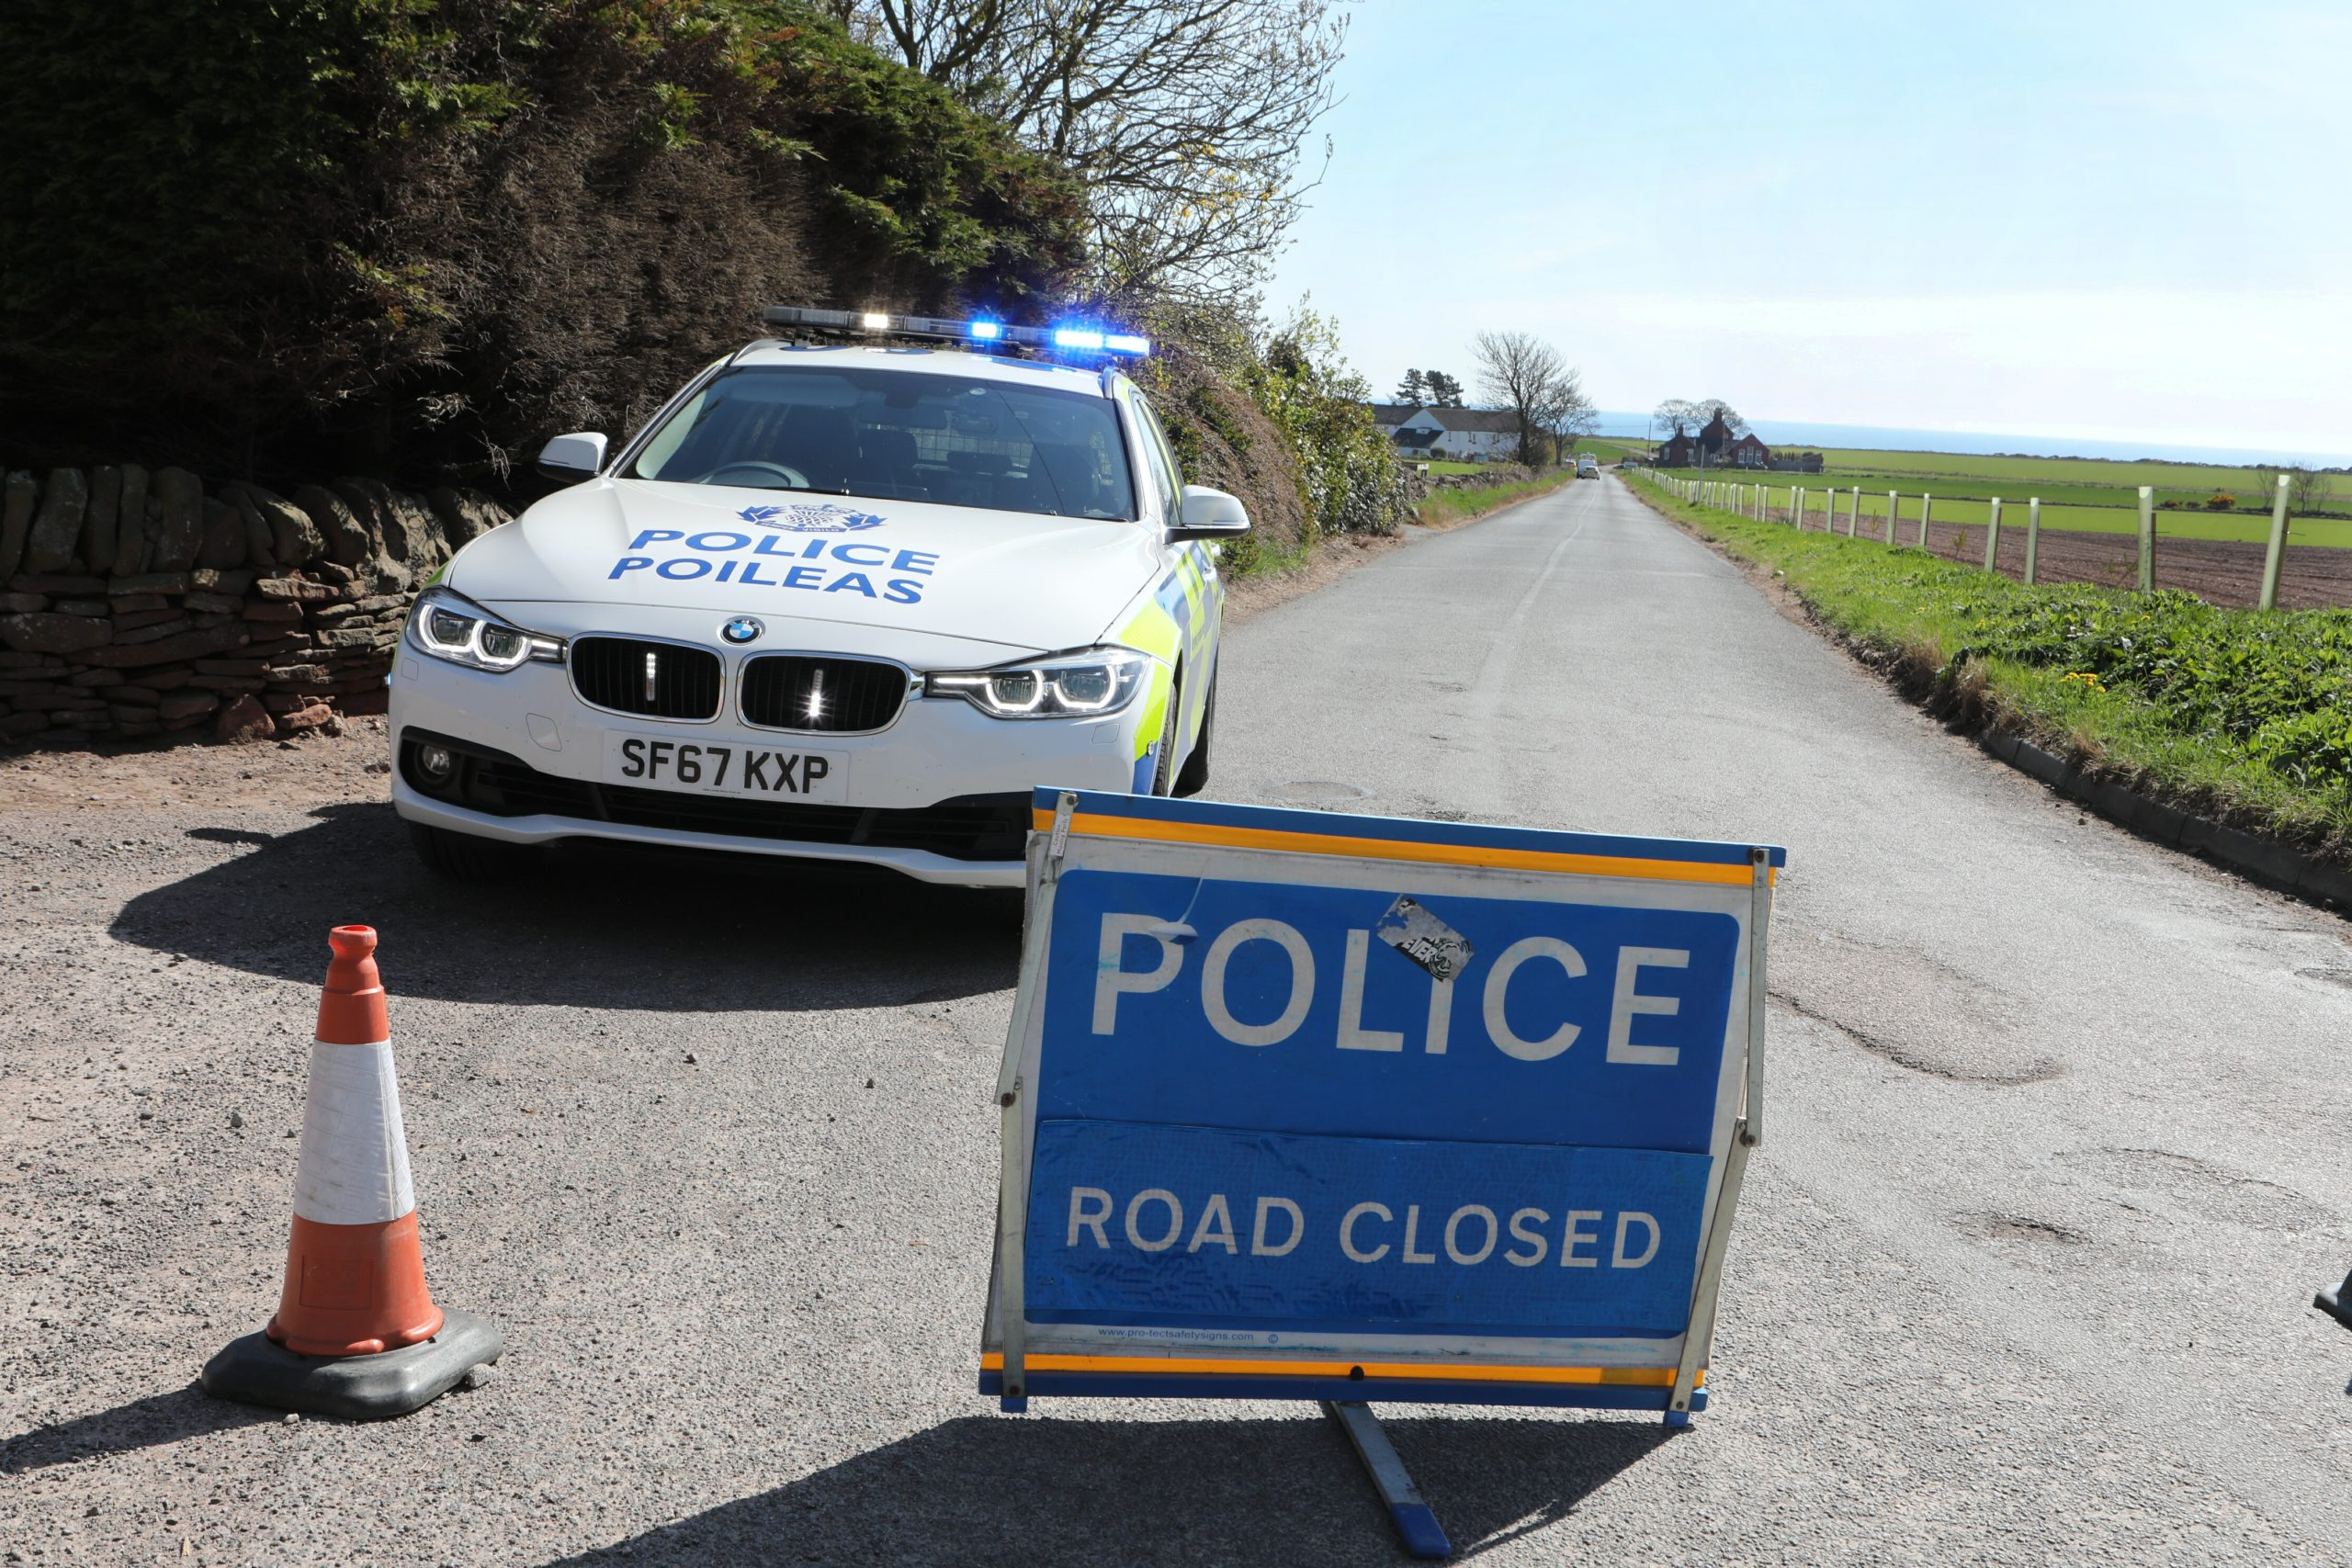 Police on the scene in Auchmithie.